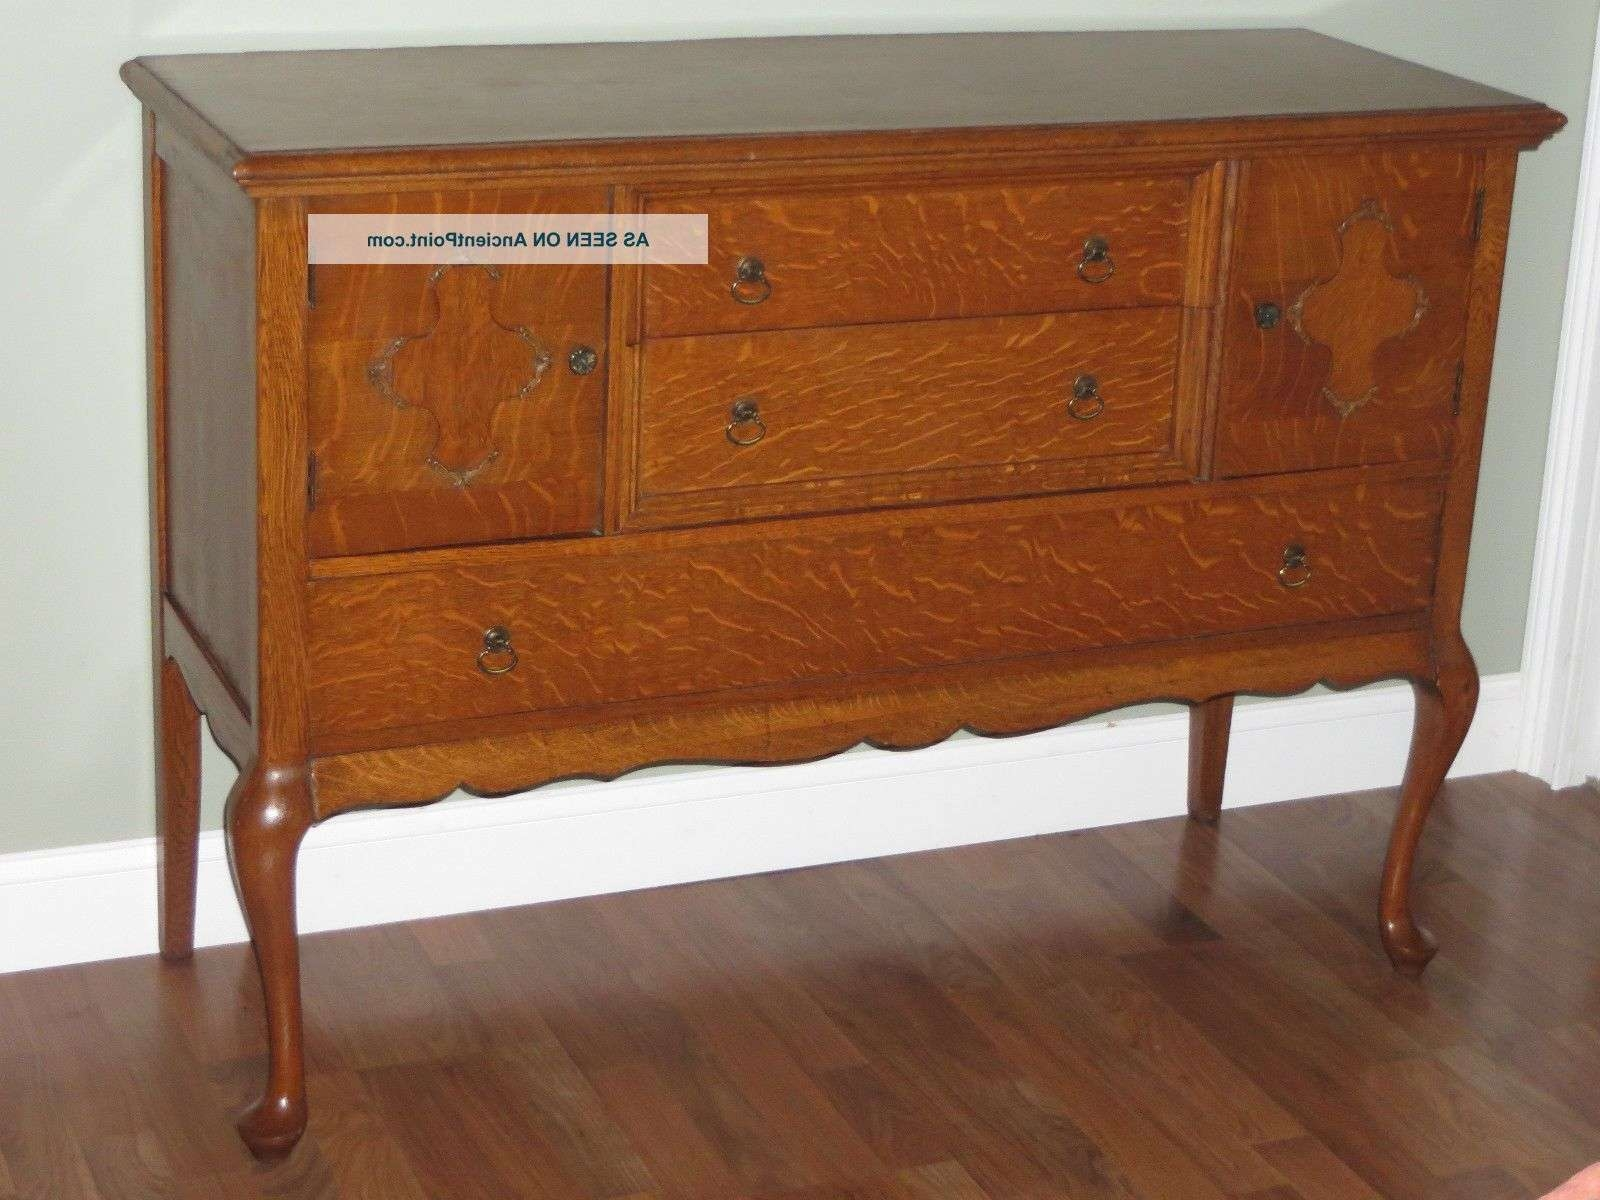 Best Of Buffet Sideboard Server – Bjdgjy Inside Wooden Sideboards And Buffets (View 16 of 20)